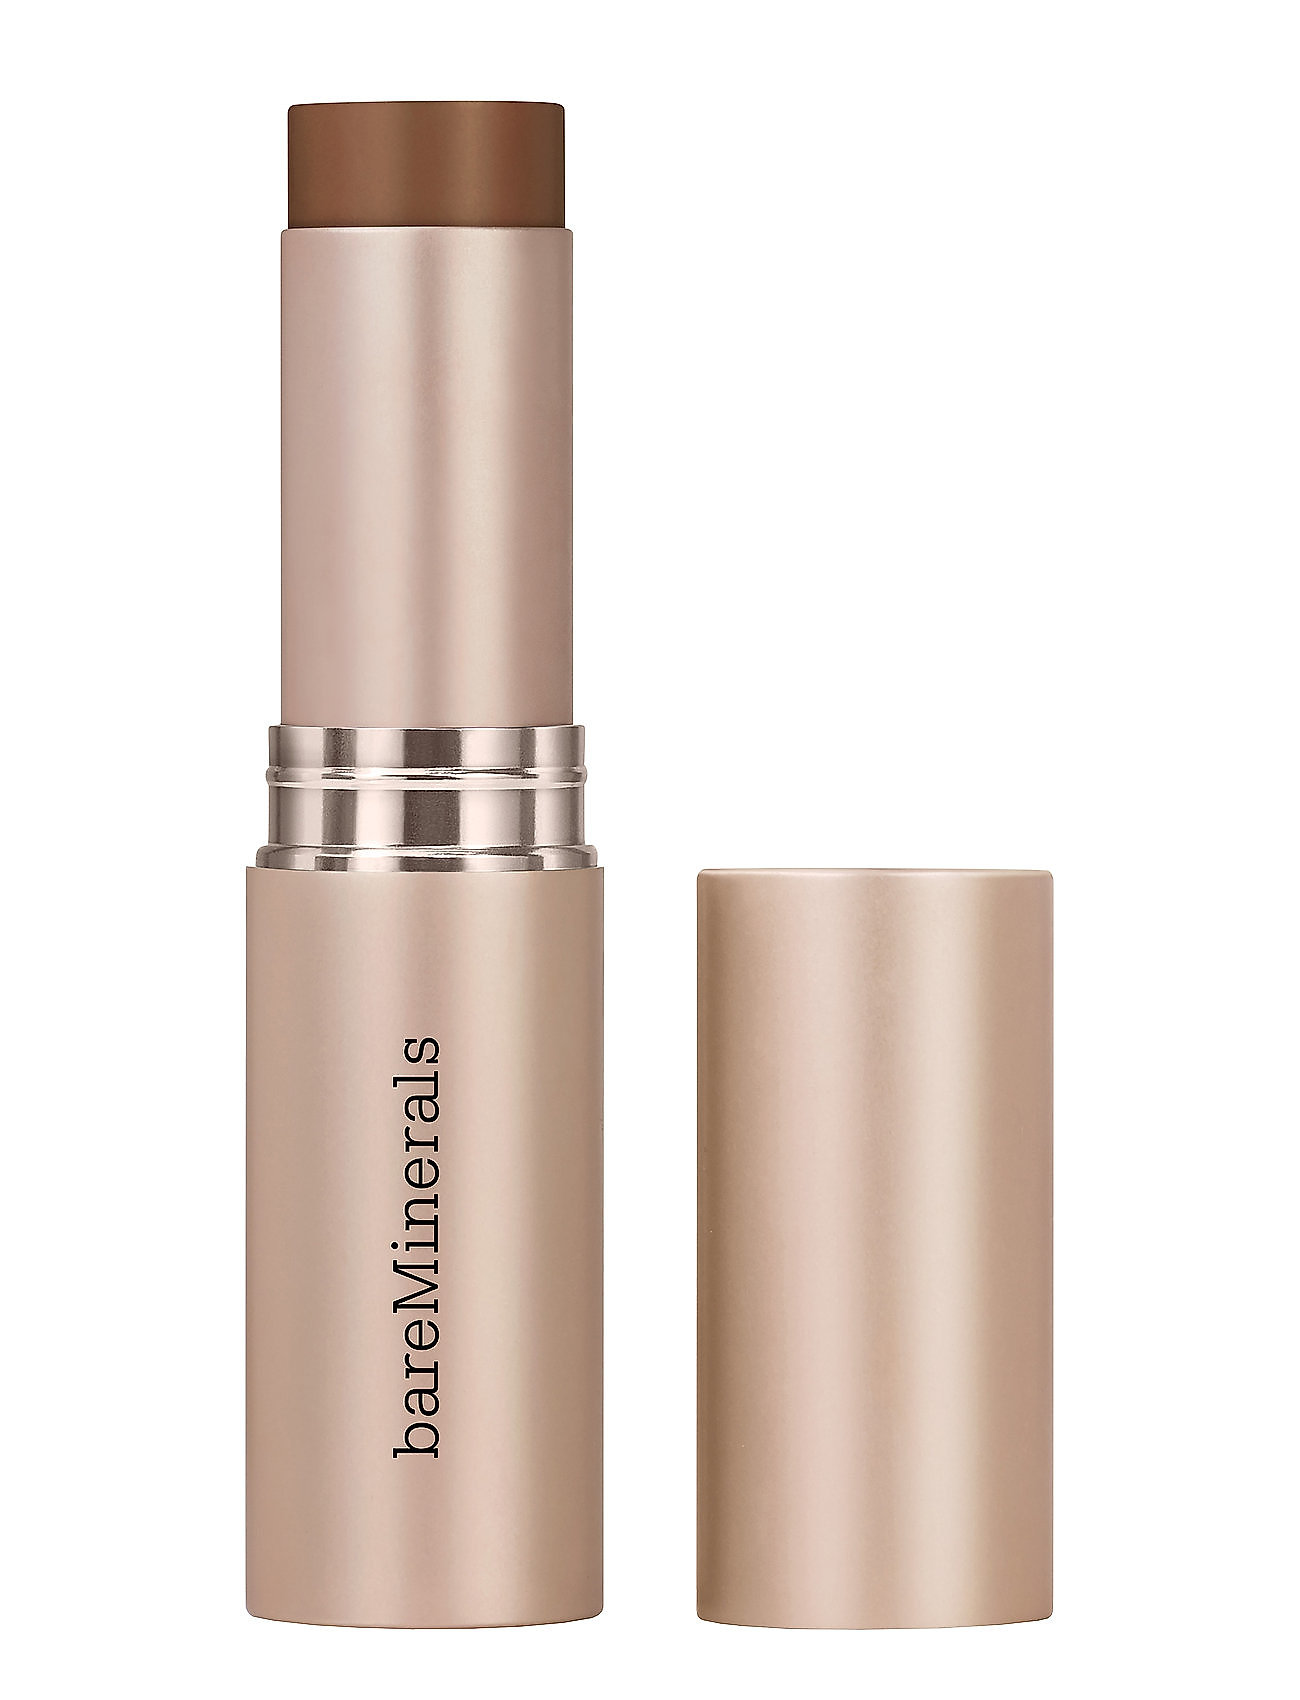 Image of Complexion Rescue Hydrating Foundation Stick Spf 25 Foundation Makeup BareMinerals (3250586913)